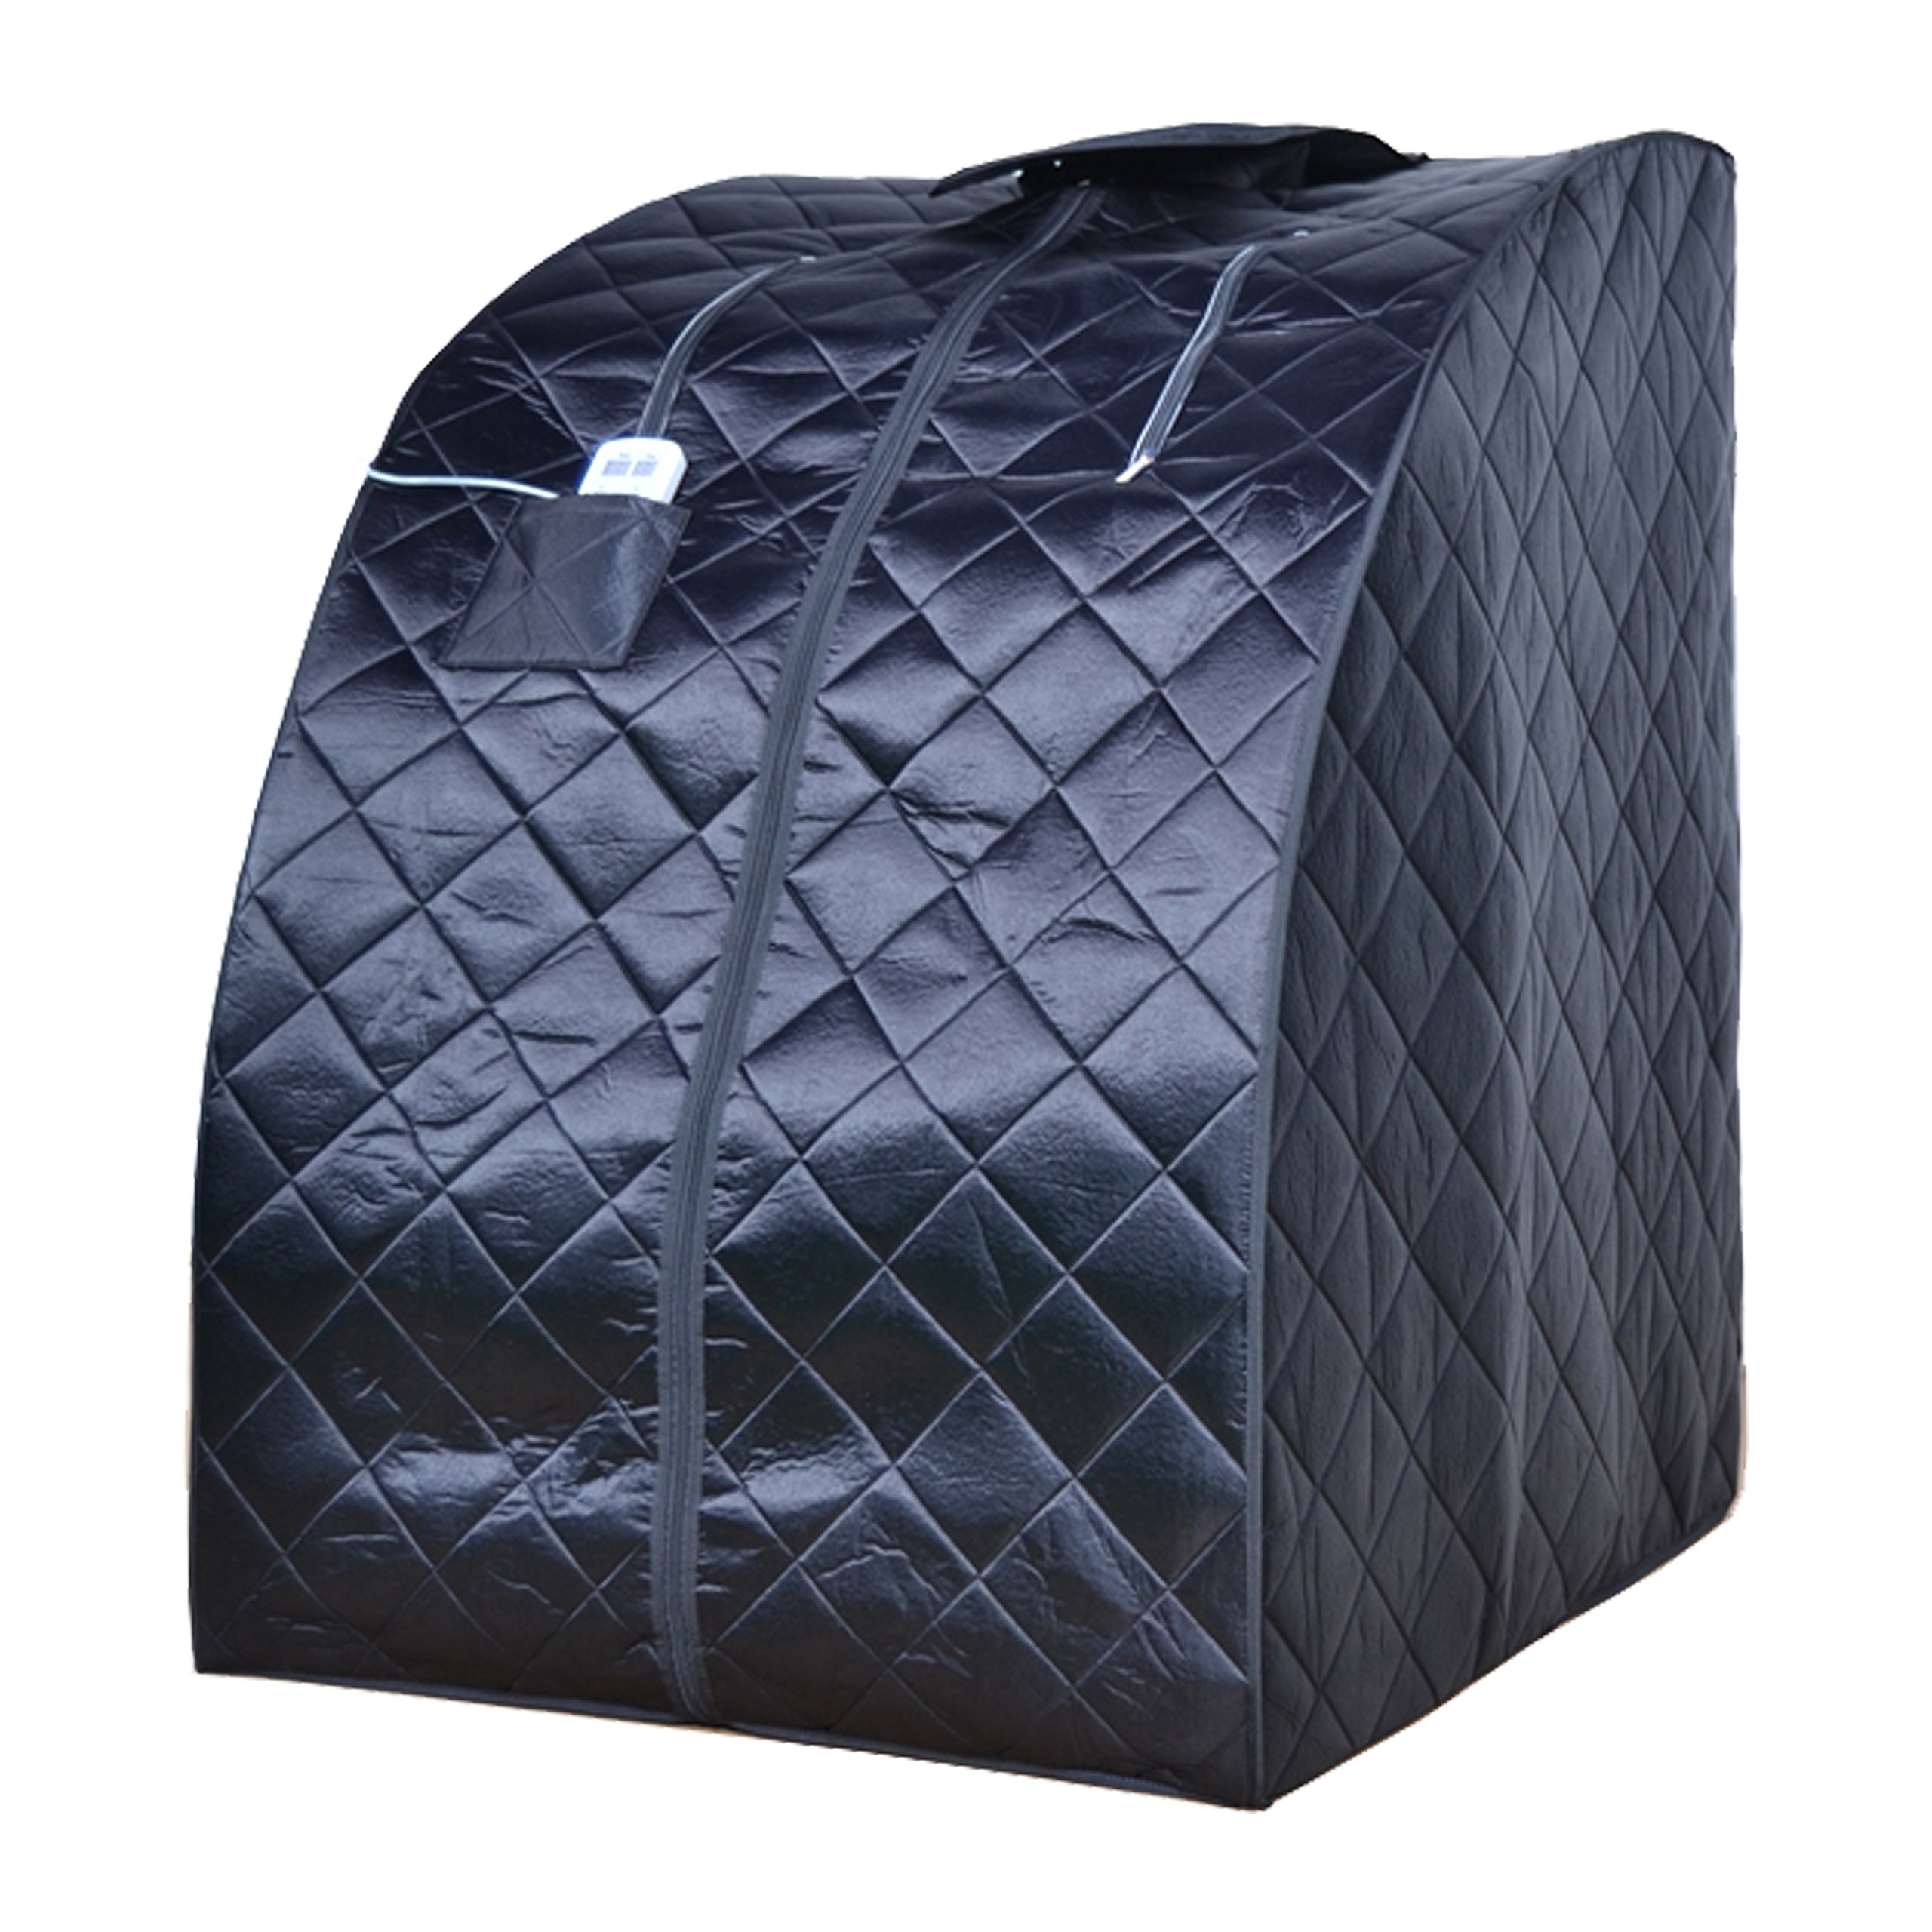 ALEKO PIN15BK Personal Folding Portable Home Infrared Sauna w/ Folding Chair and Foot Pad, Black